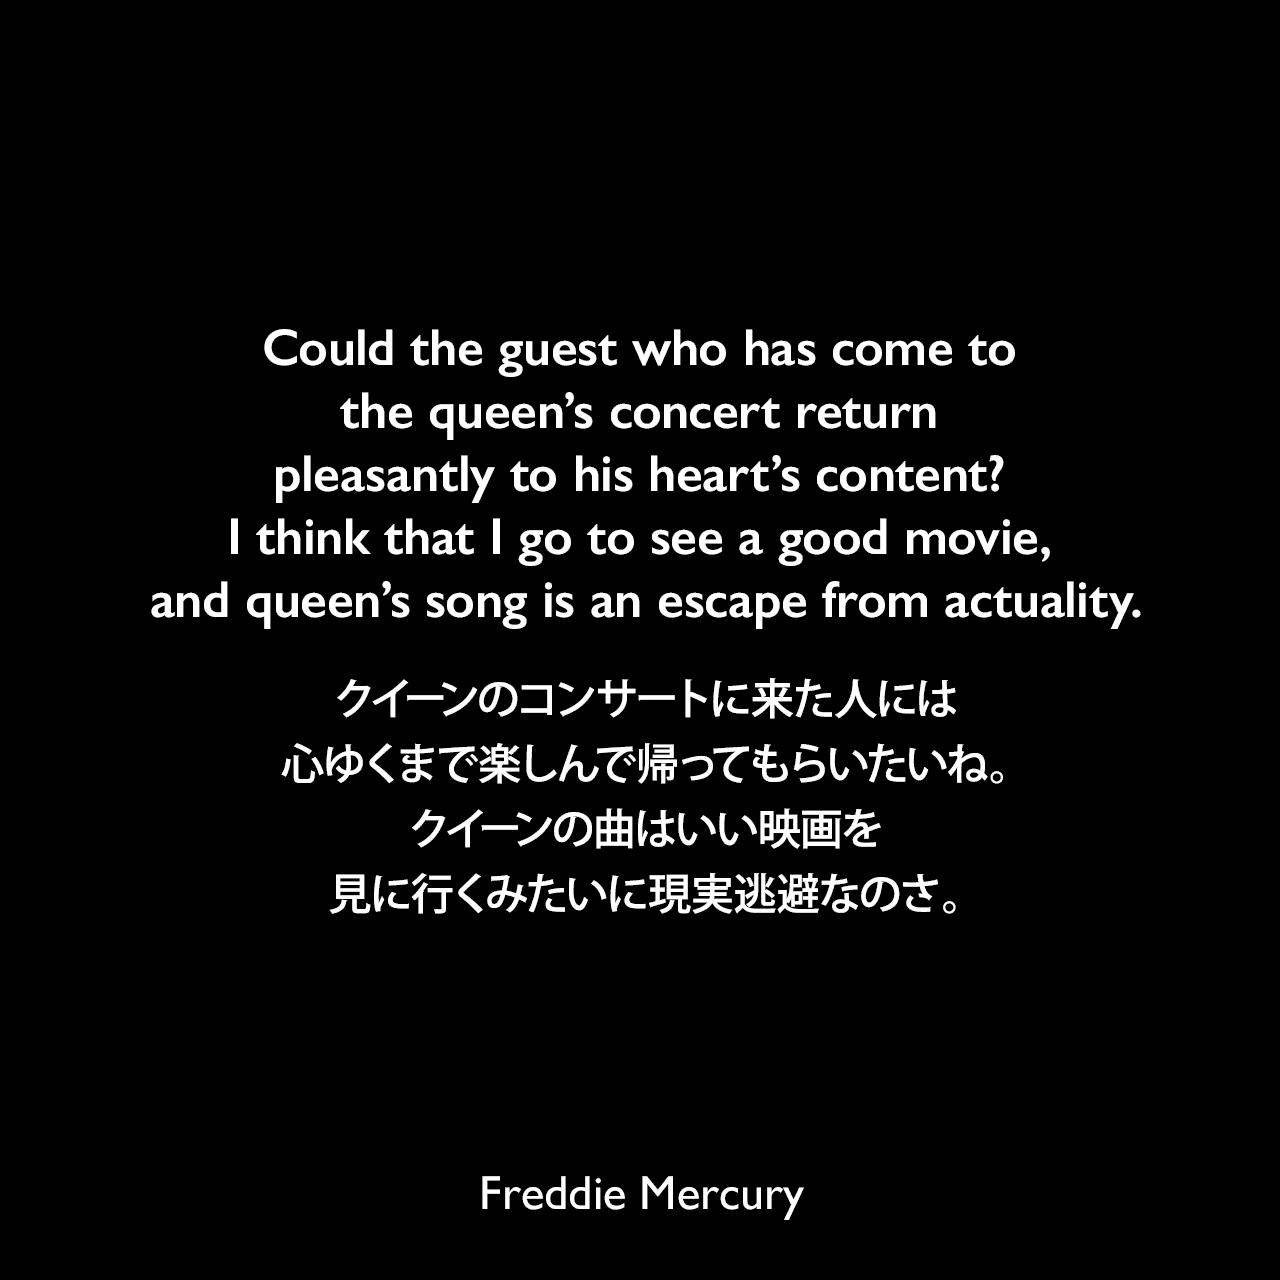 Could the guest who has come to the queen's concert return pleasantly to his heart's content? I think that I go to see a good movie, and queen's song is an escape from actuality.クイーンのコンサートに来た人には心ゆくまで楽しんで帰ってもらいたいね。クイーンの曲はいい映画を見に行くみたいに現実逃避なのさ。Freddie Mercury